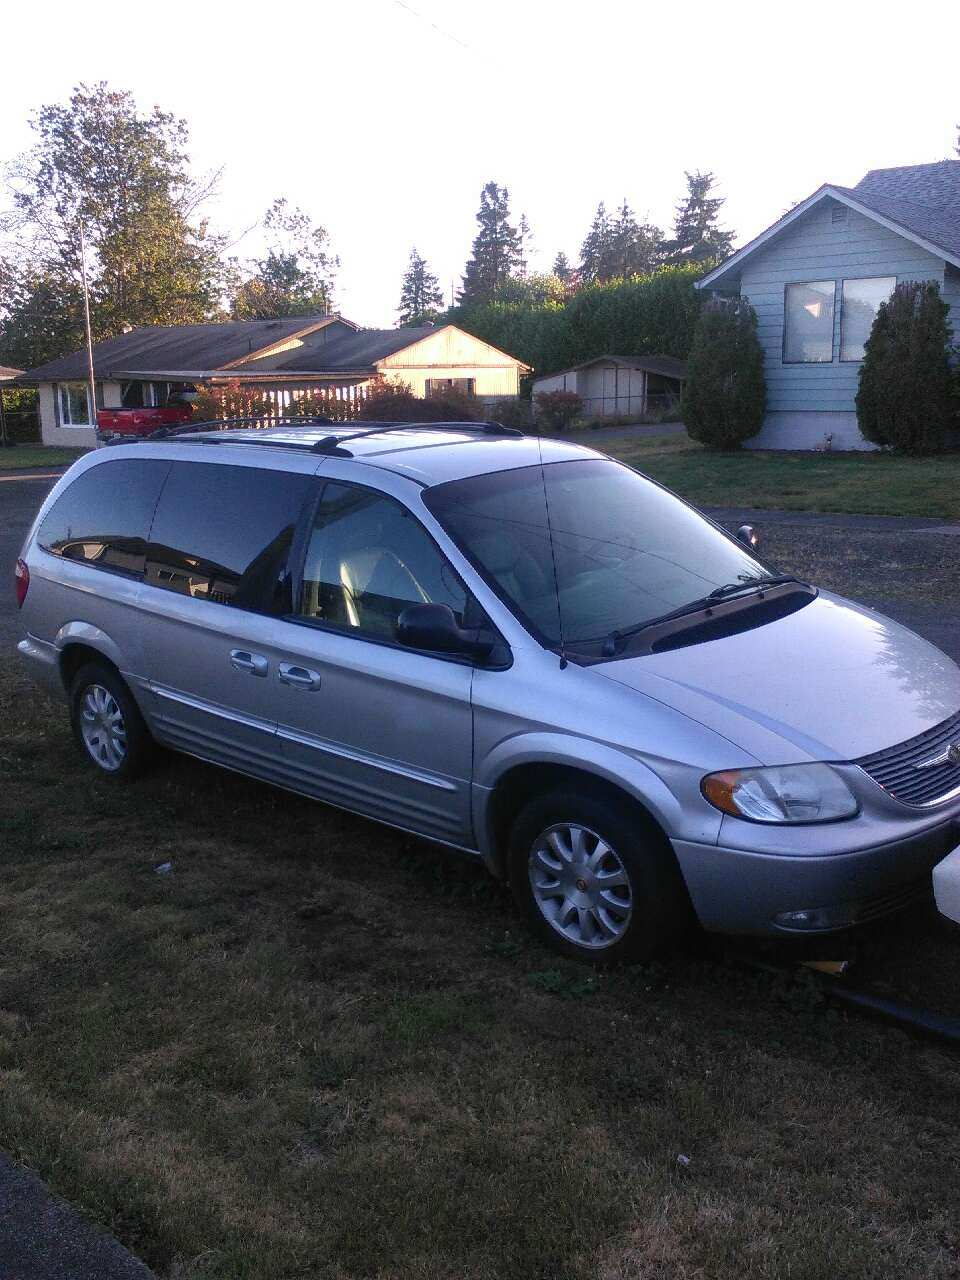 letgo 2002 chrysler town and country in alder grove wa. Black Bedroom Furniture Sets. Home Design Ideas